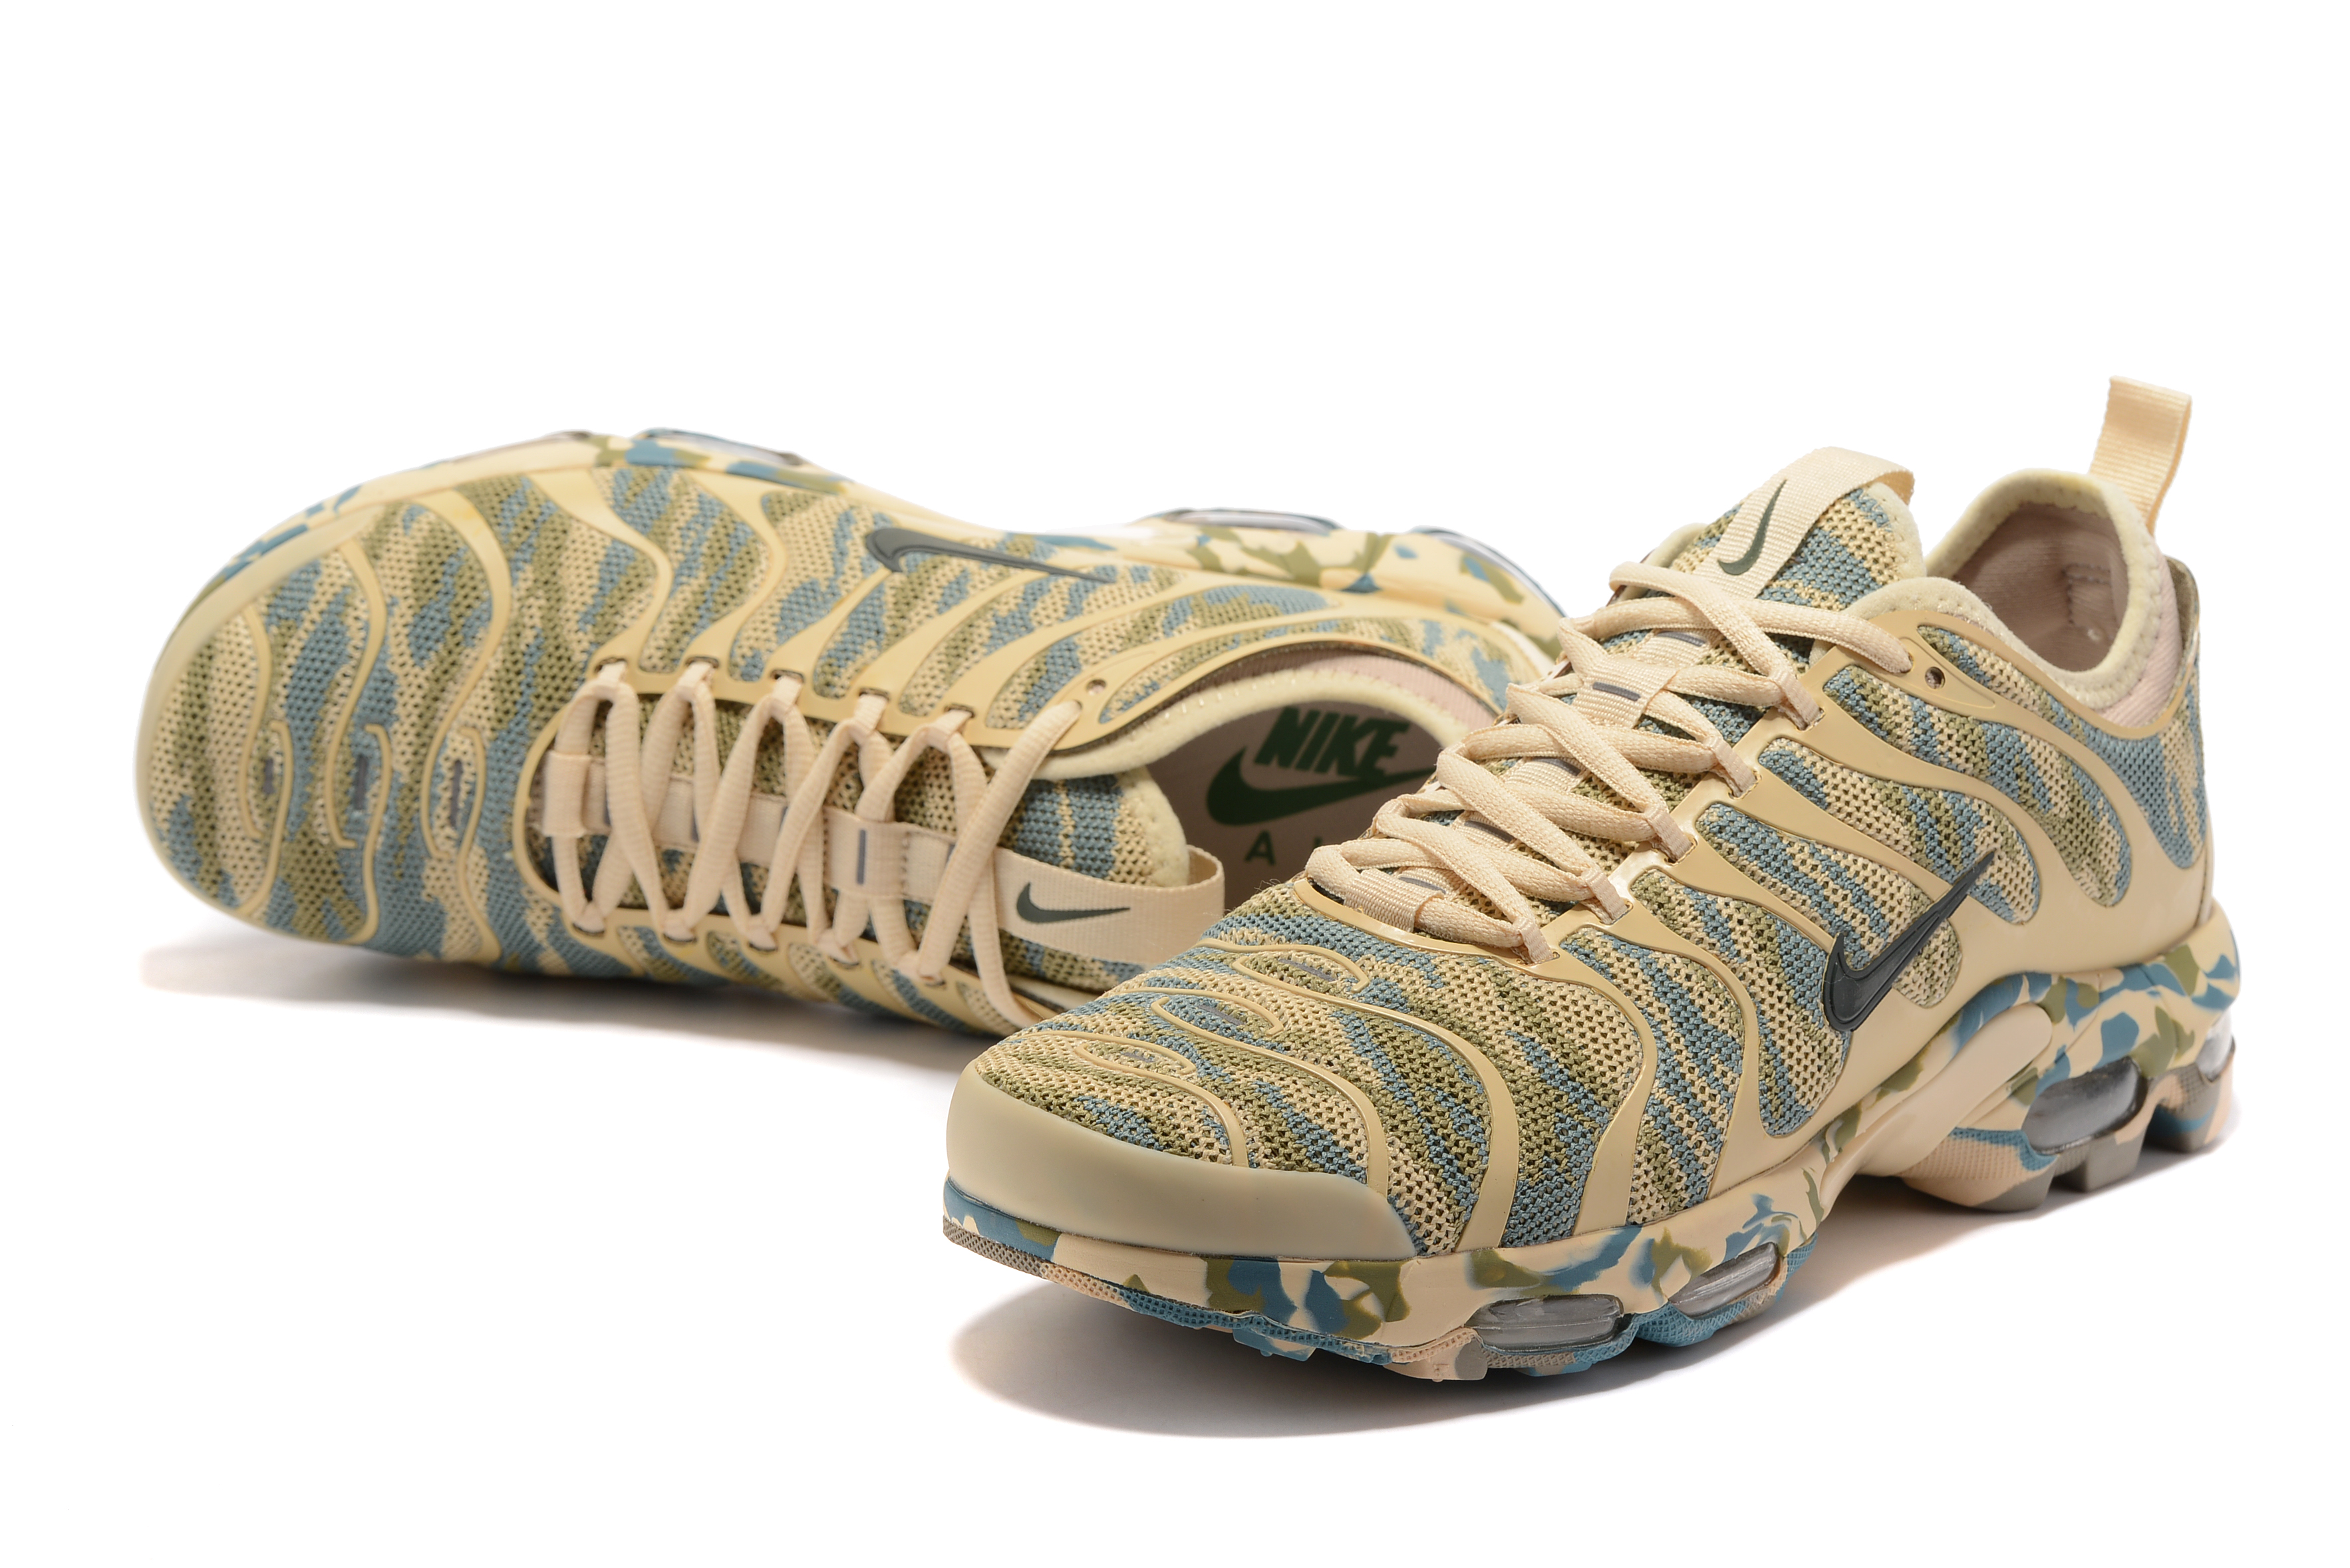 Nike Air Max Plus TN Camo Geign Shoes